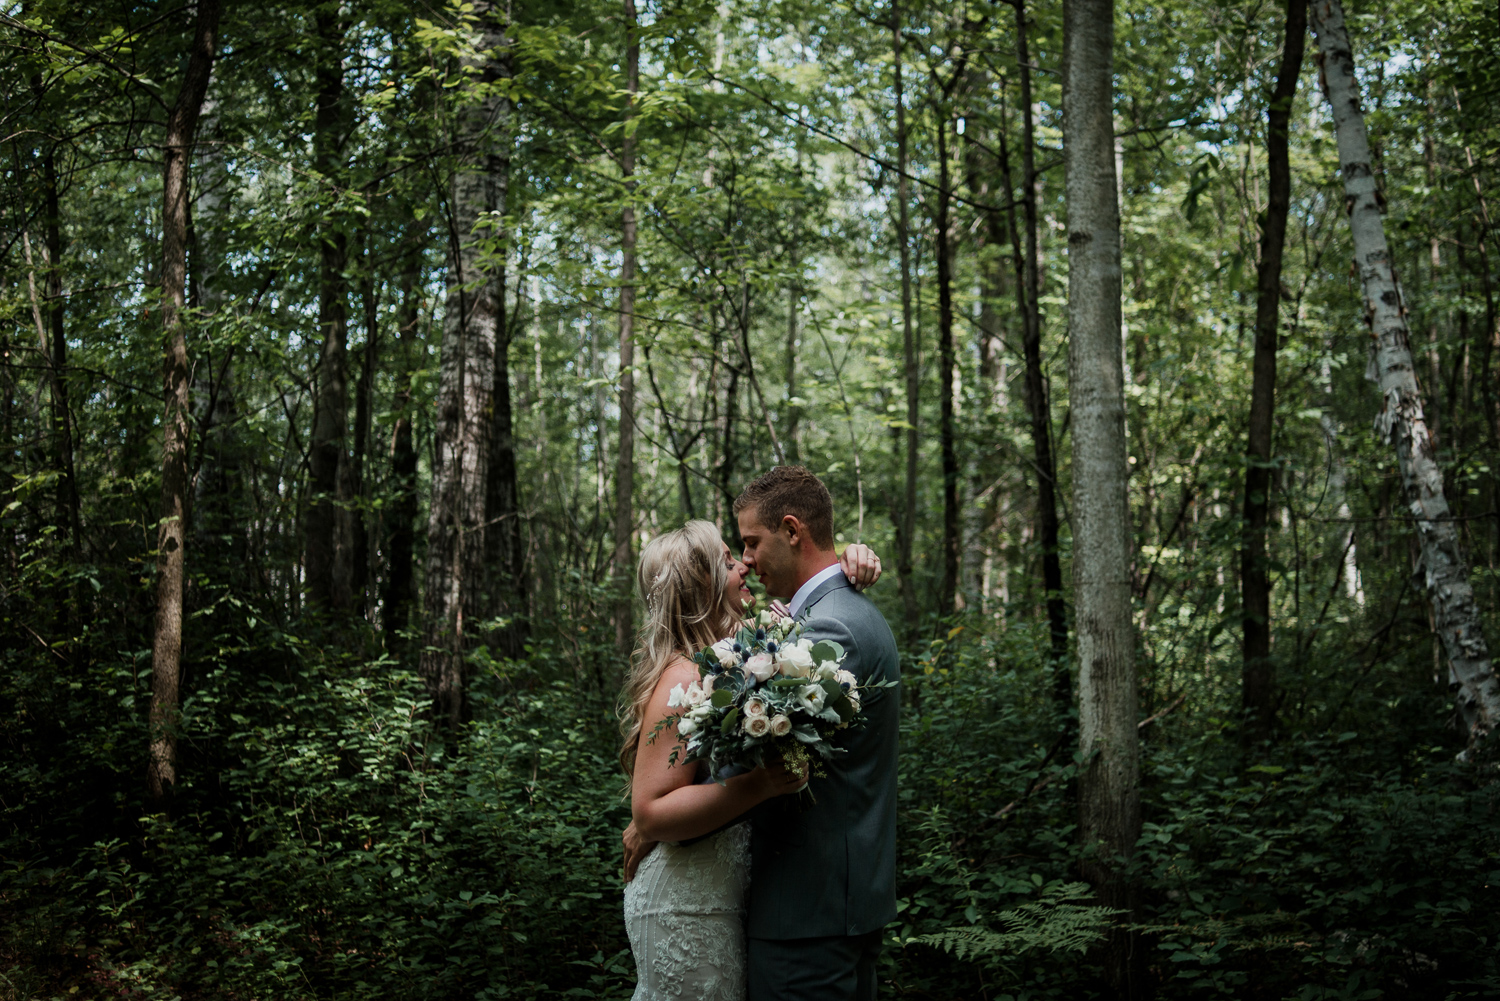 Stanley's Olde Maple Farm wedding